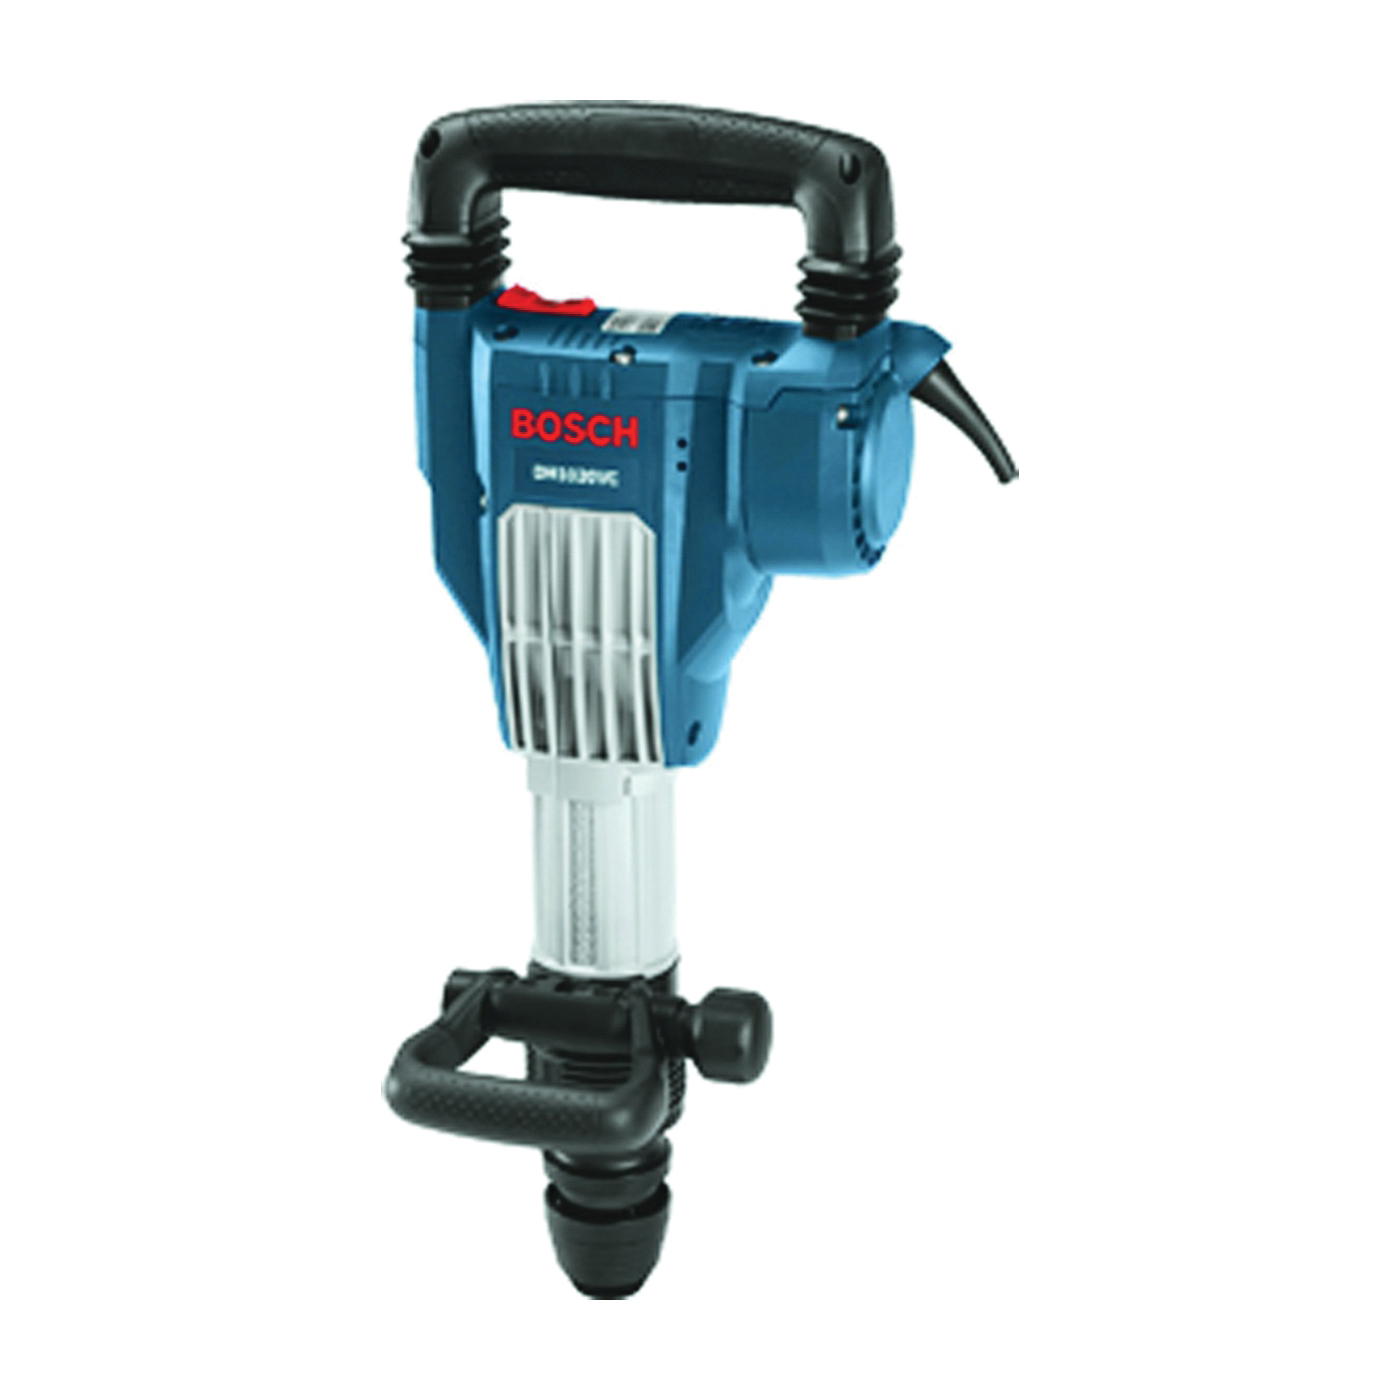 Picture of Bosch DH1020VC Demolition Hammer, 120 V, 15 A, 1-1/8 in Chuck, Keyless, SDS-Max Chuck, 850 to 1800 bpm BPM